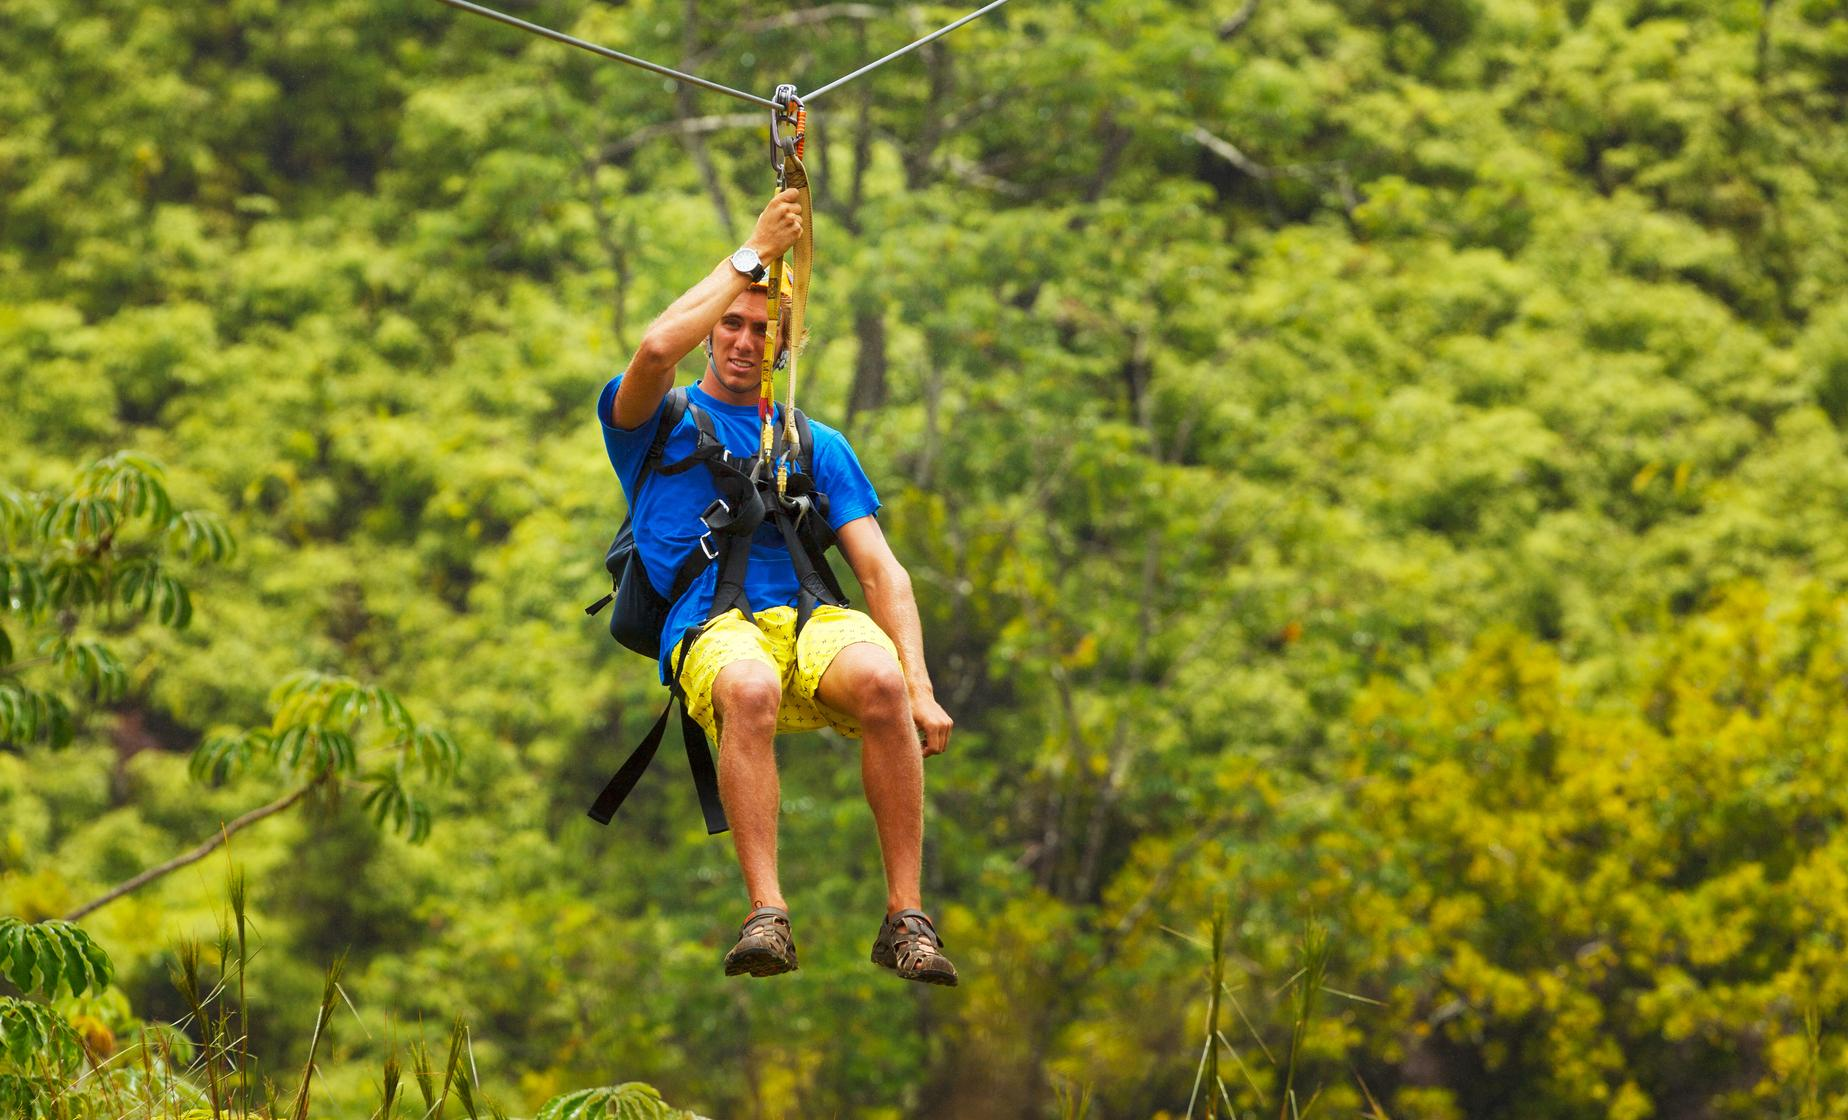 Castries Dune Buggy & Dennery Zip Line Cruise Trip in St. Lucia